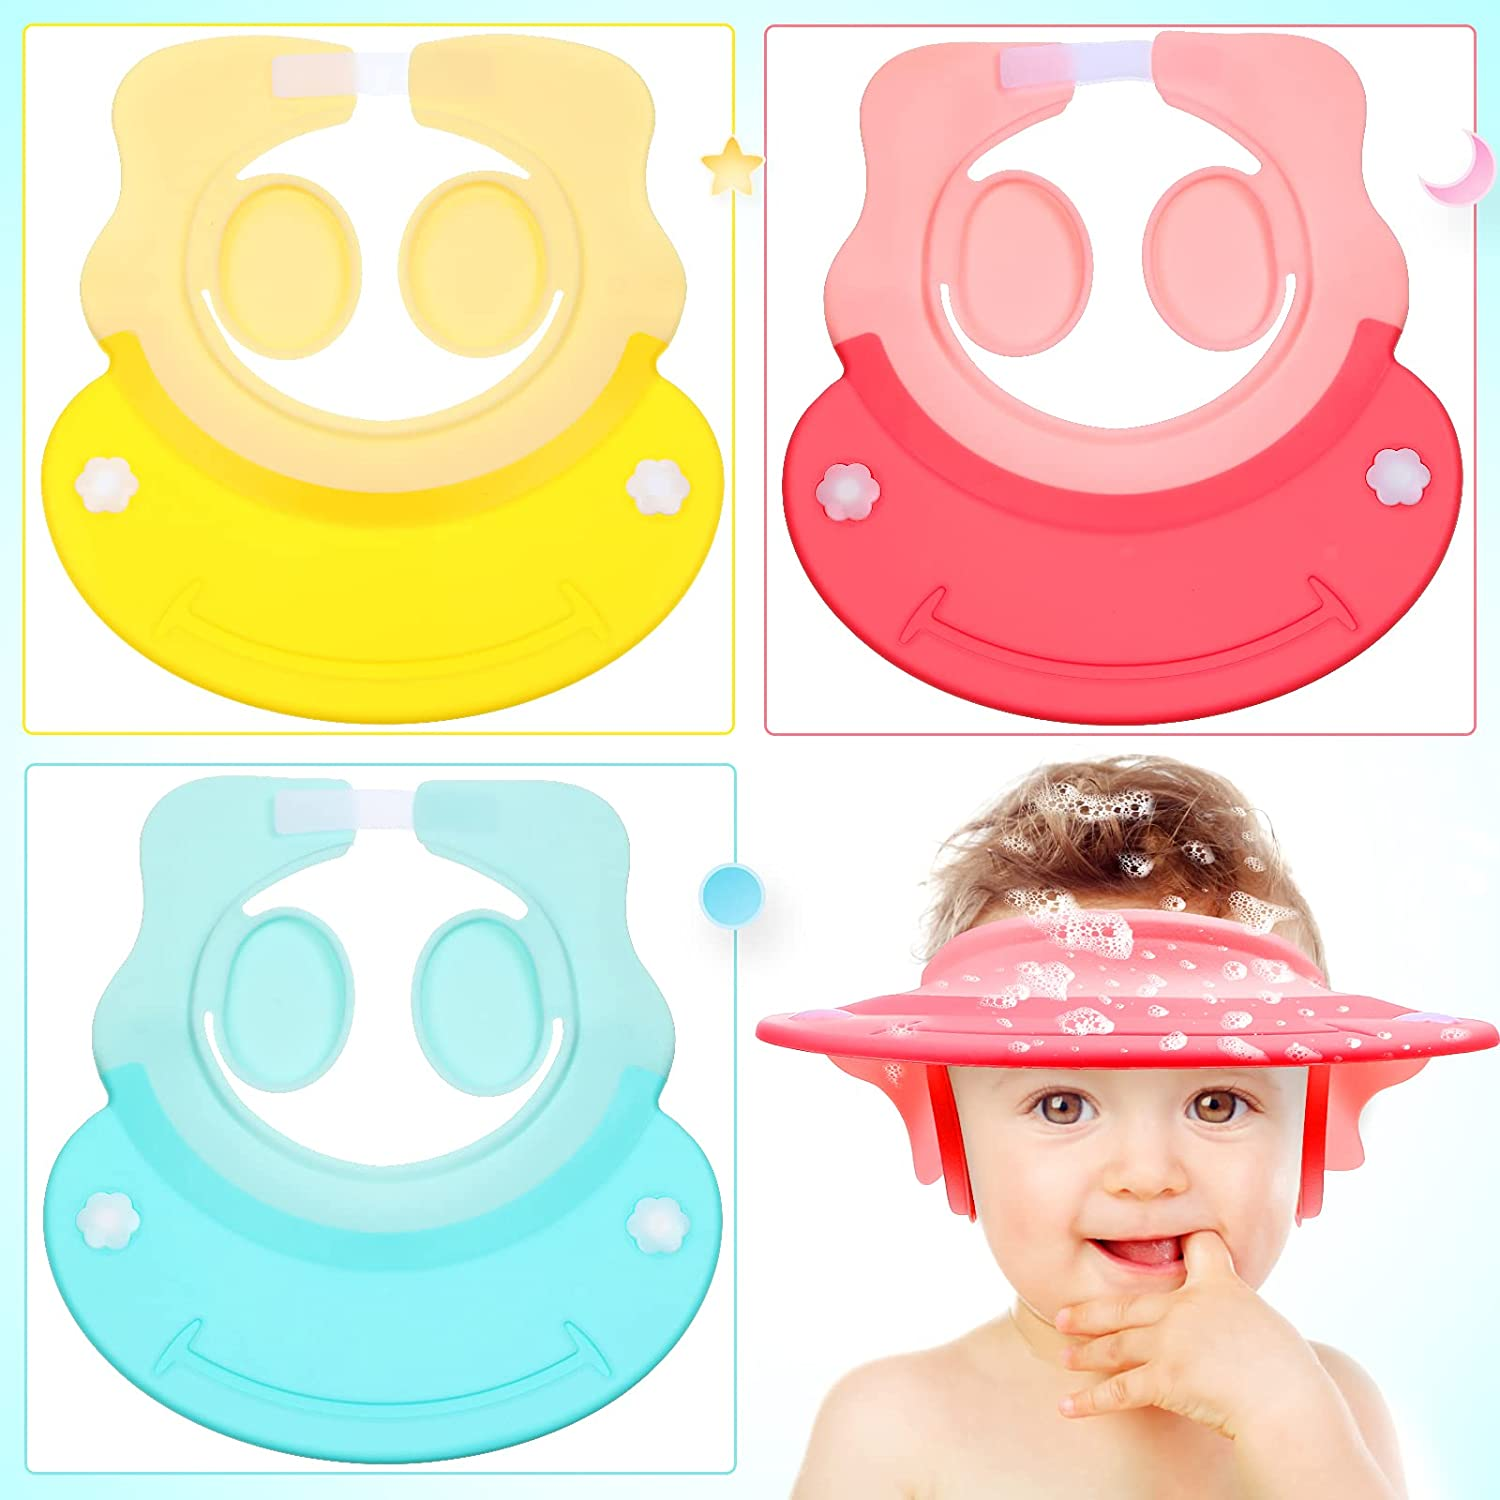 3 Pieces Baby Shower Cap Baby Bath Rinse Cup Adjustable Children Shower Visor Silicone Shampoo Bath Cap Protect Eye Ear for Infants Toddlers Kids Children (Pink, Yellow, Blue)